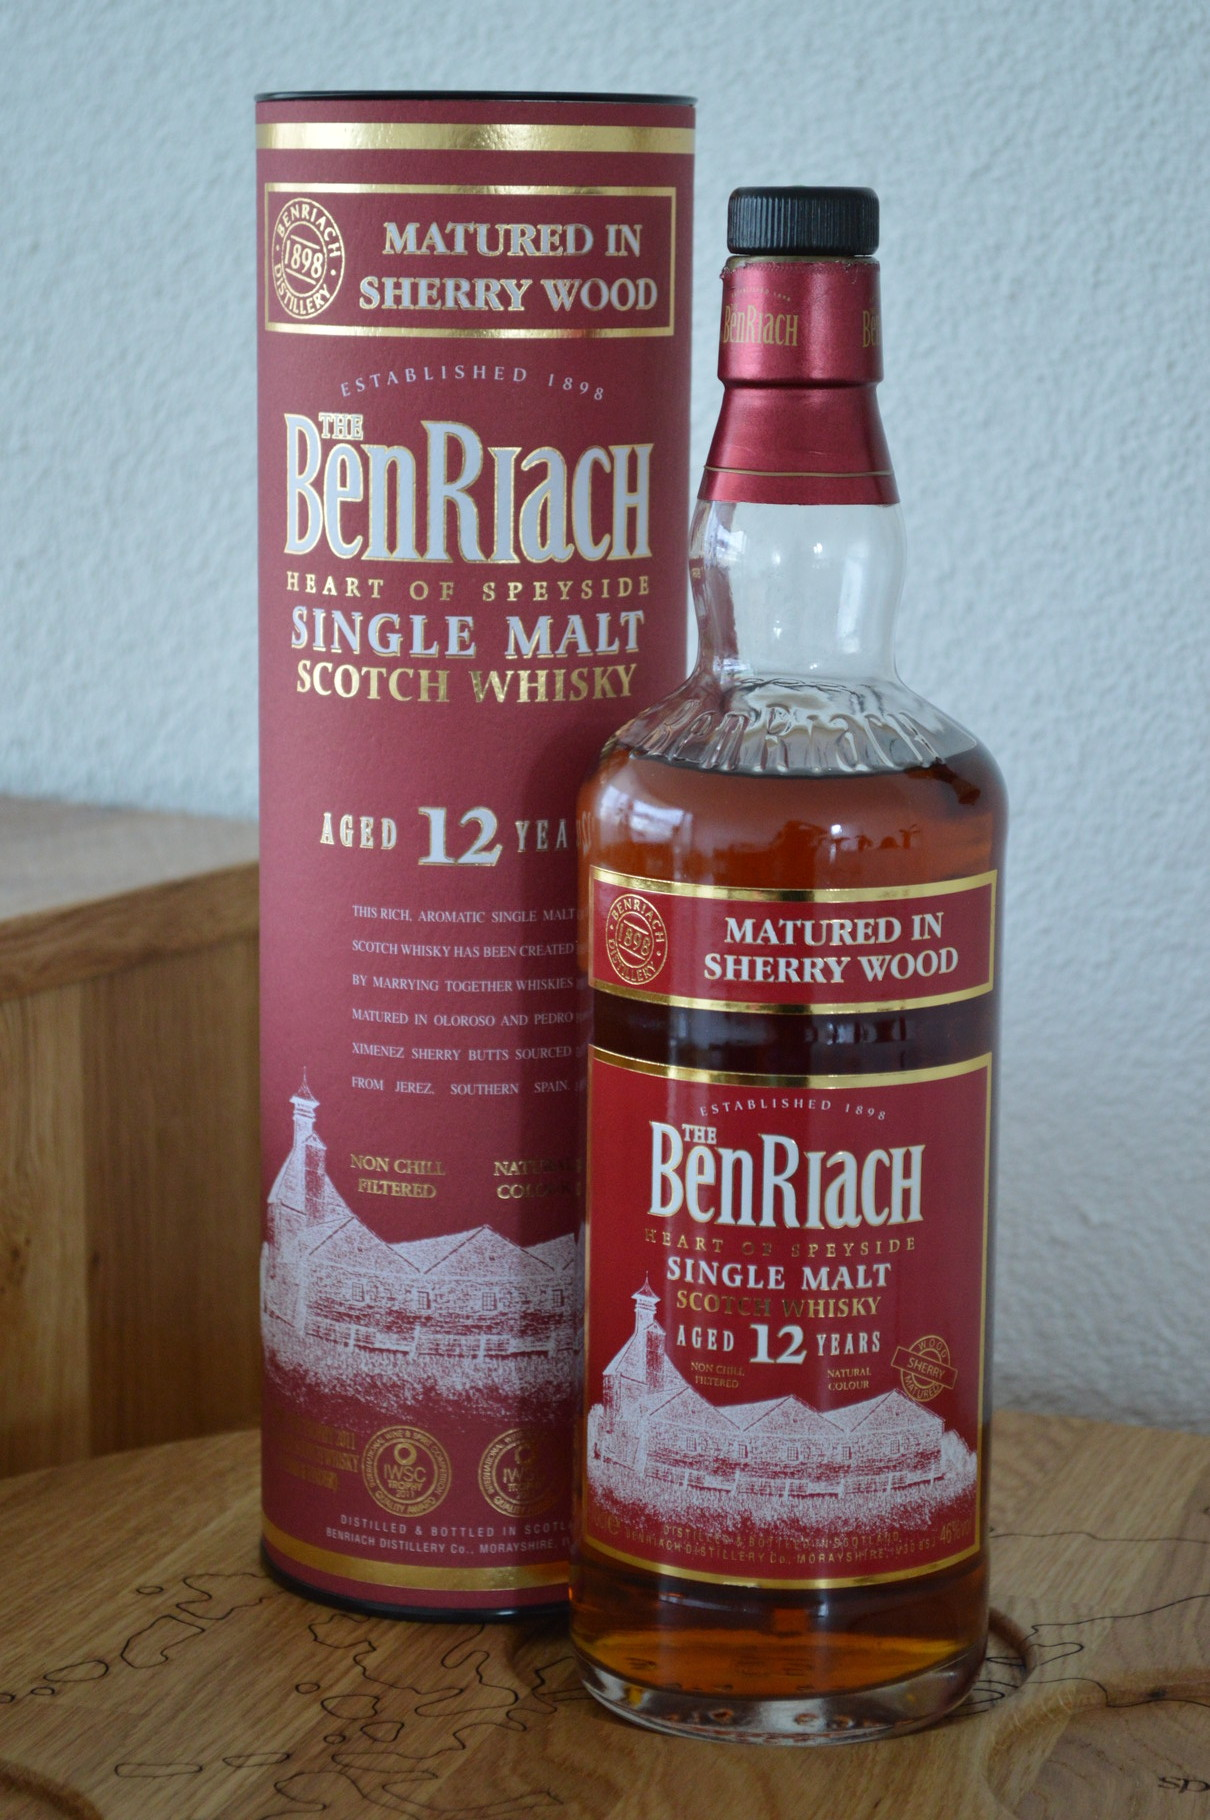 SPEYSIDE - BenRiach* - Aged: 12 years - Bottler: Original - 70cl - 46% - Sherry Wood Finish